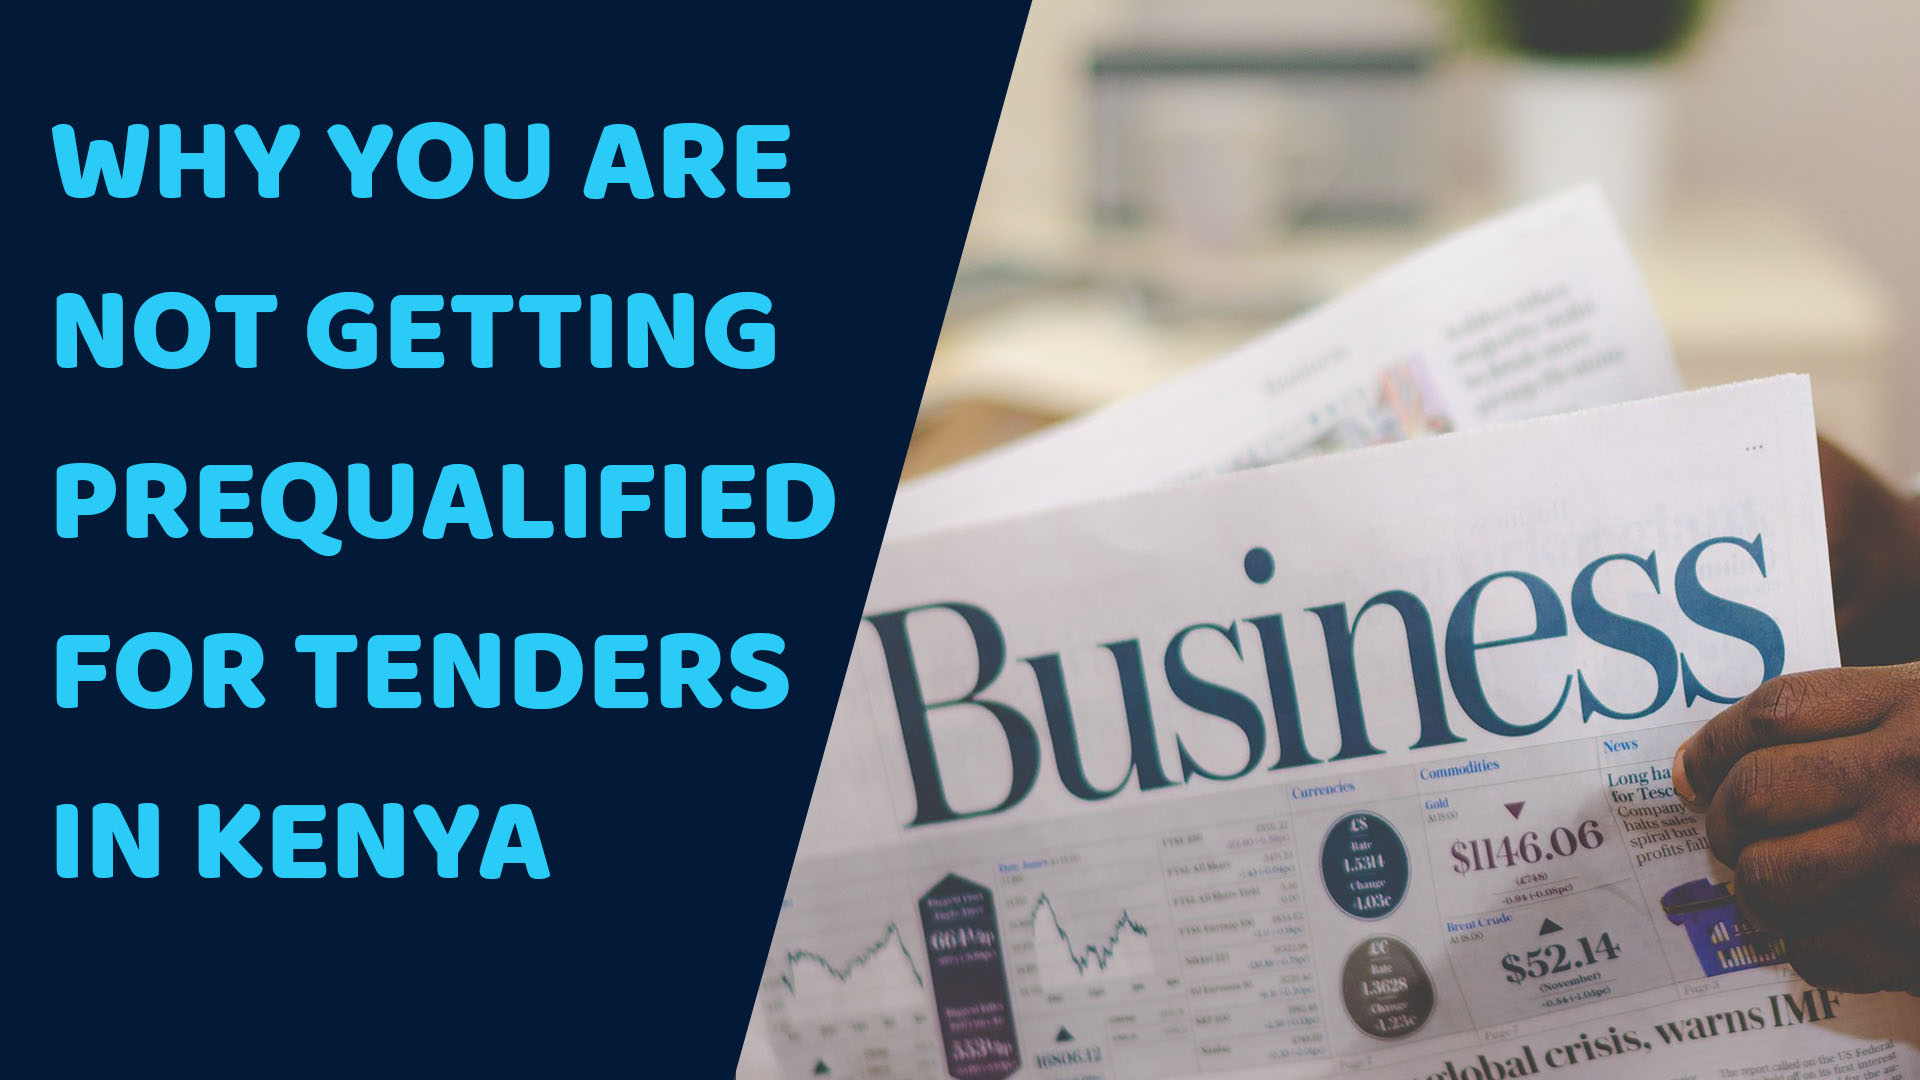 Kenyan Entrepreneur? Here is Why You are Not Getting Prequalified For Tenders